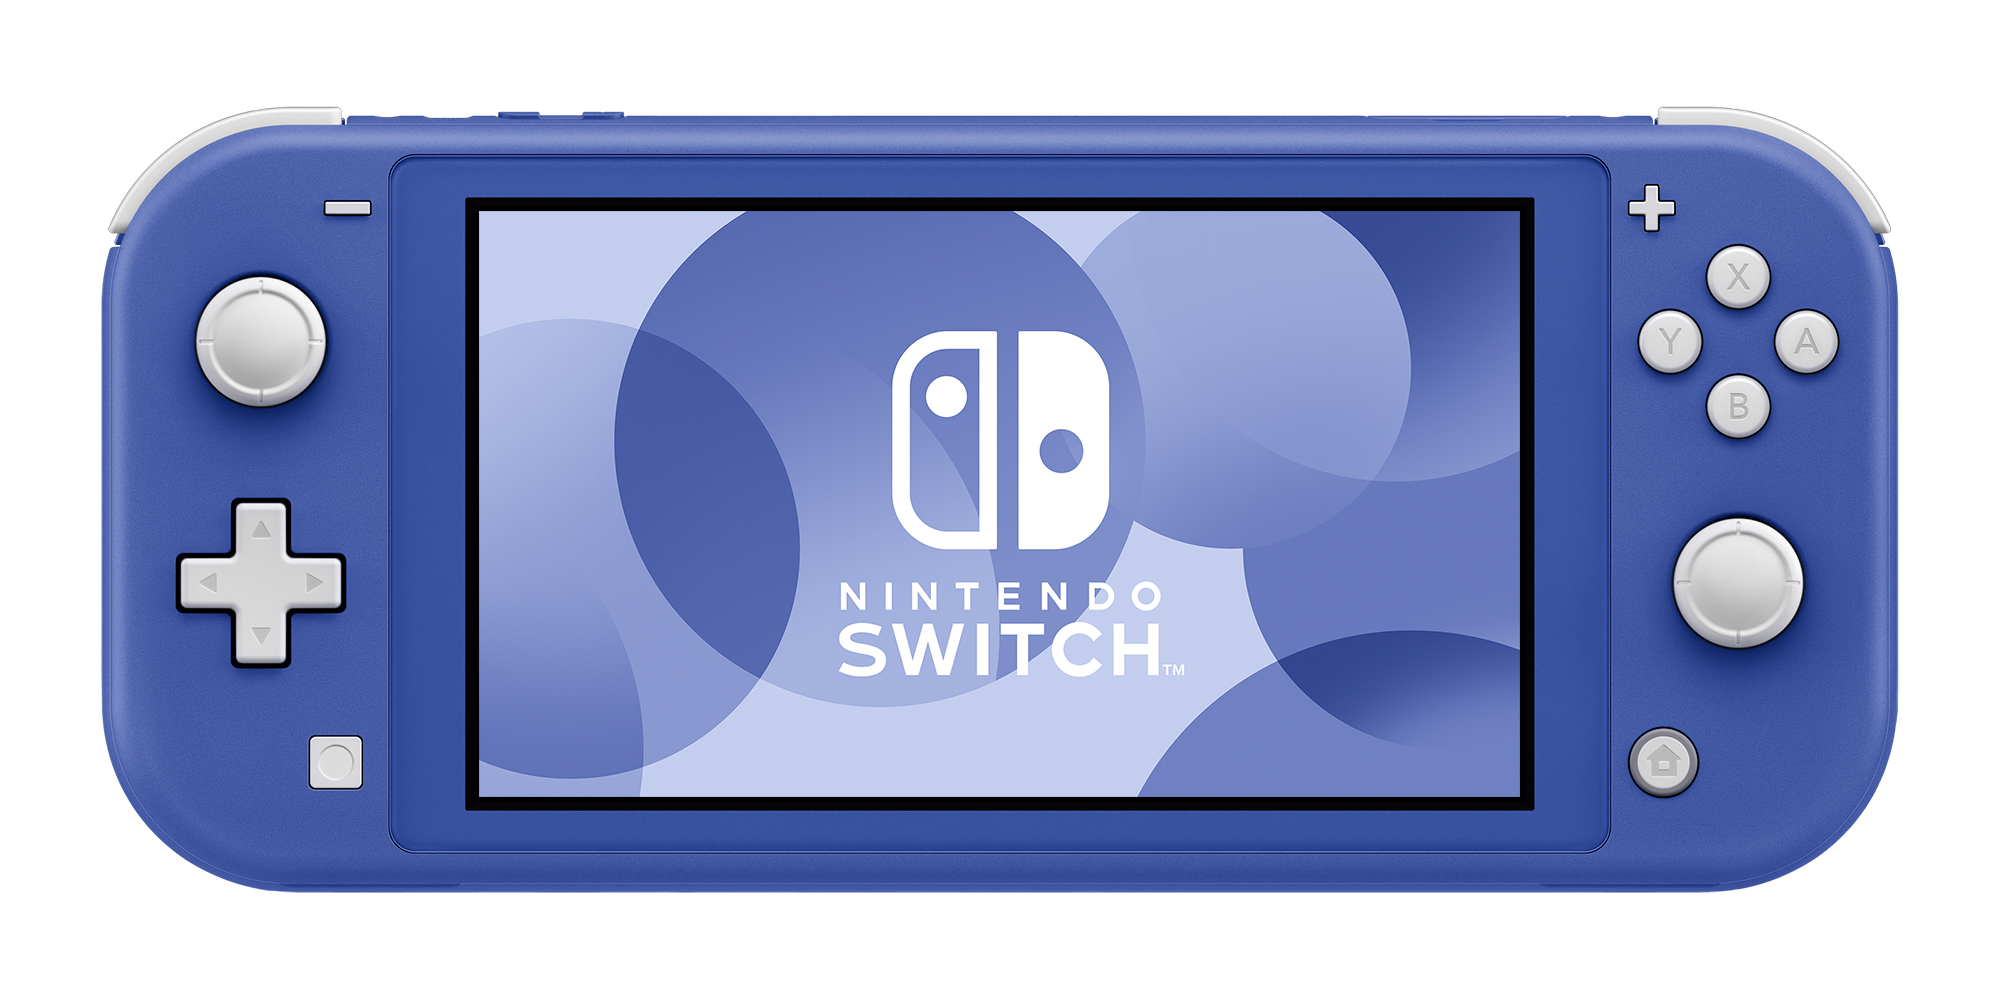 Nintendo Announces New Blue Nintendo Switch Lite